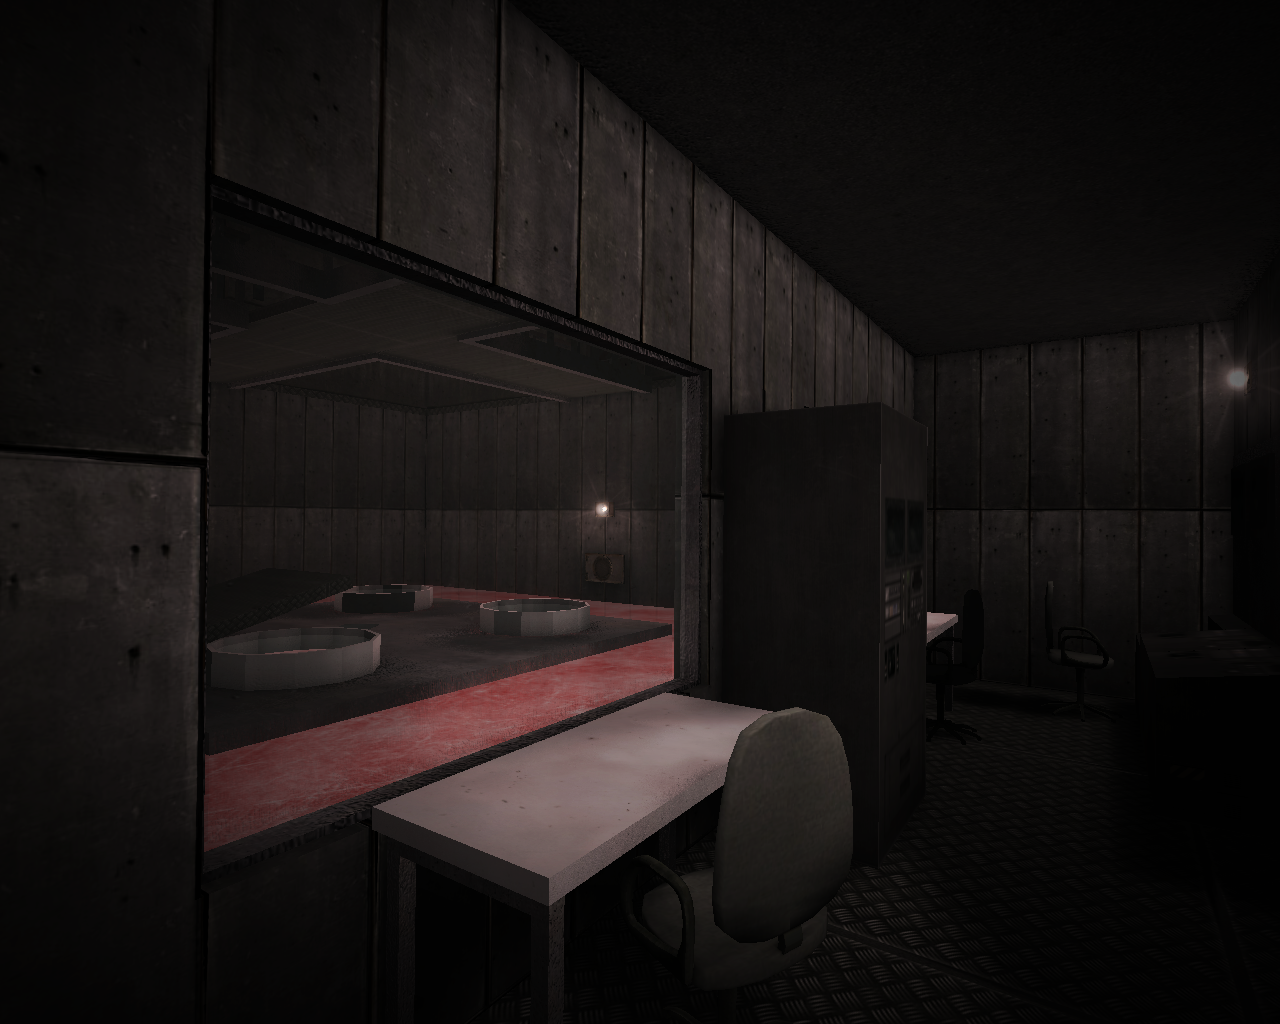 scp ultimate edition mod download new update